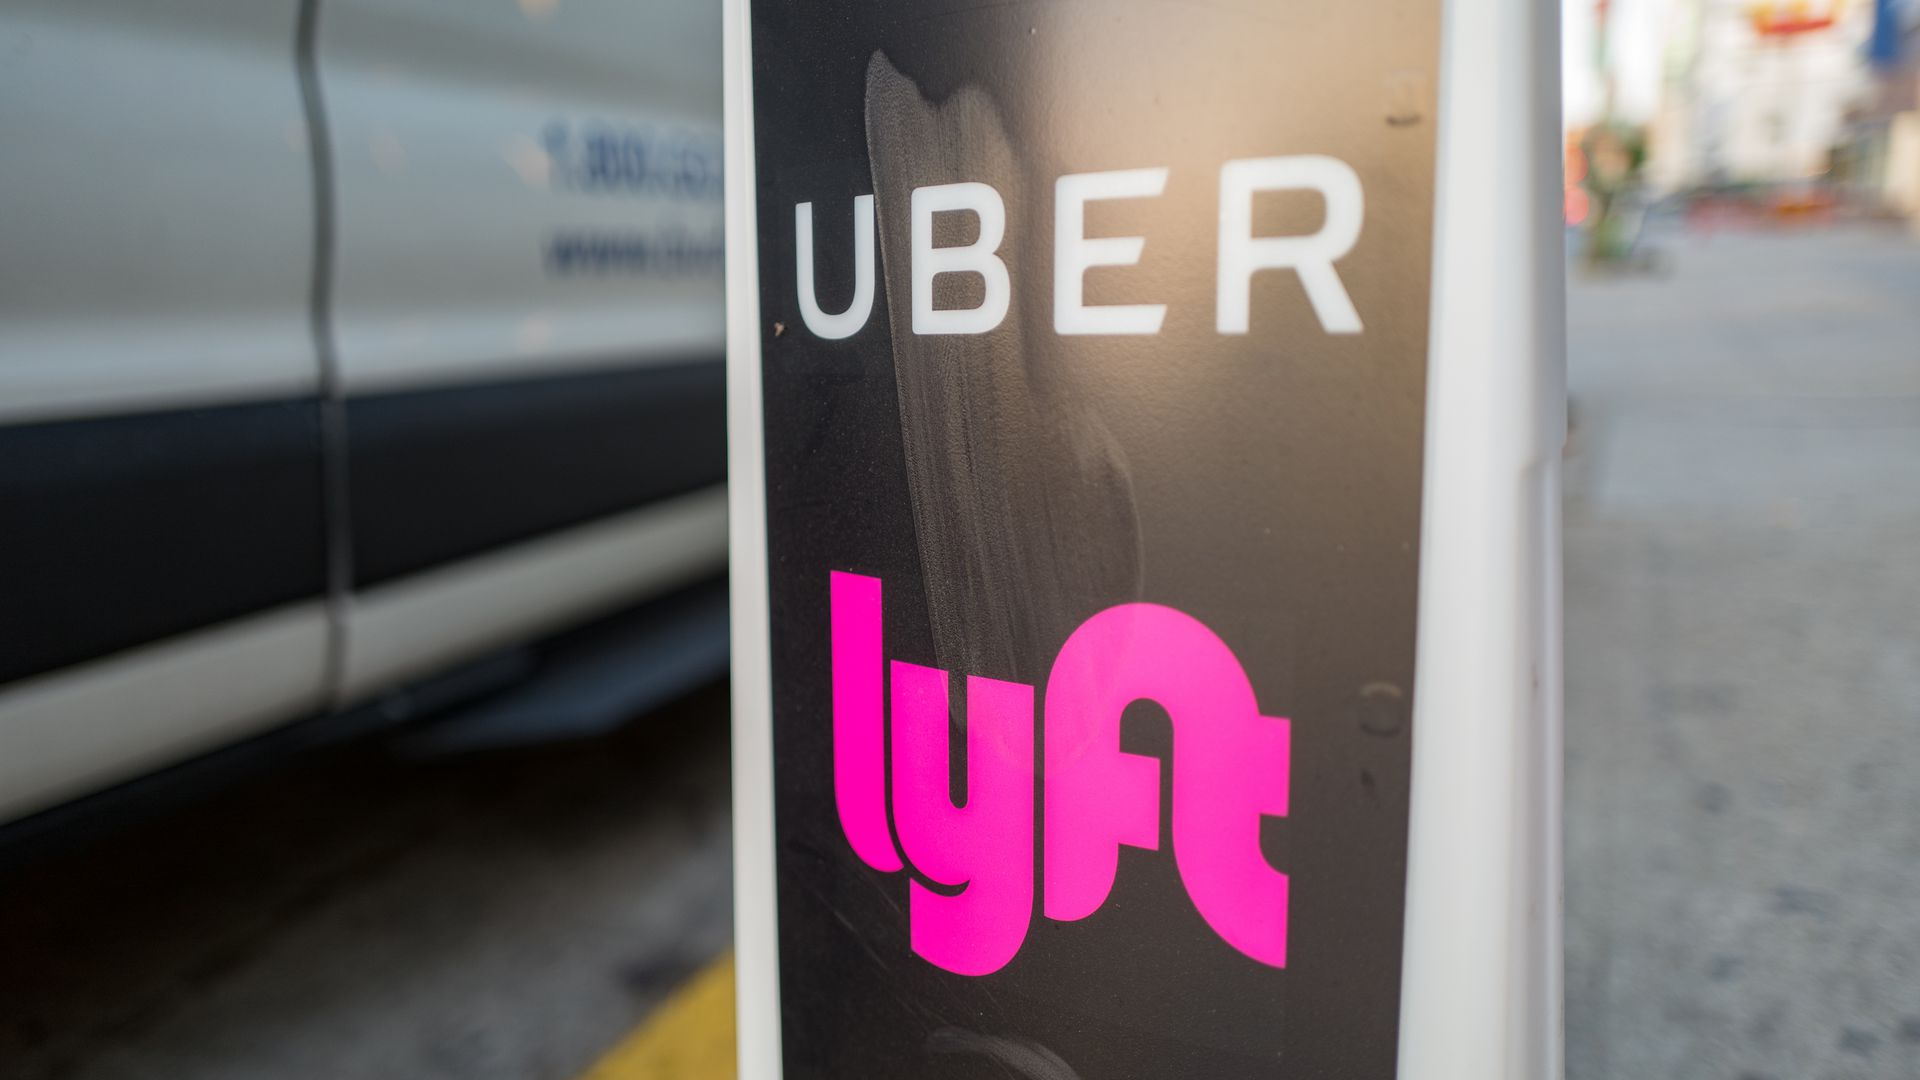 In this image, the Uber and Lyft logos are stacked on top of one another on a pole